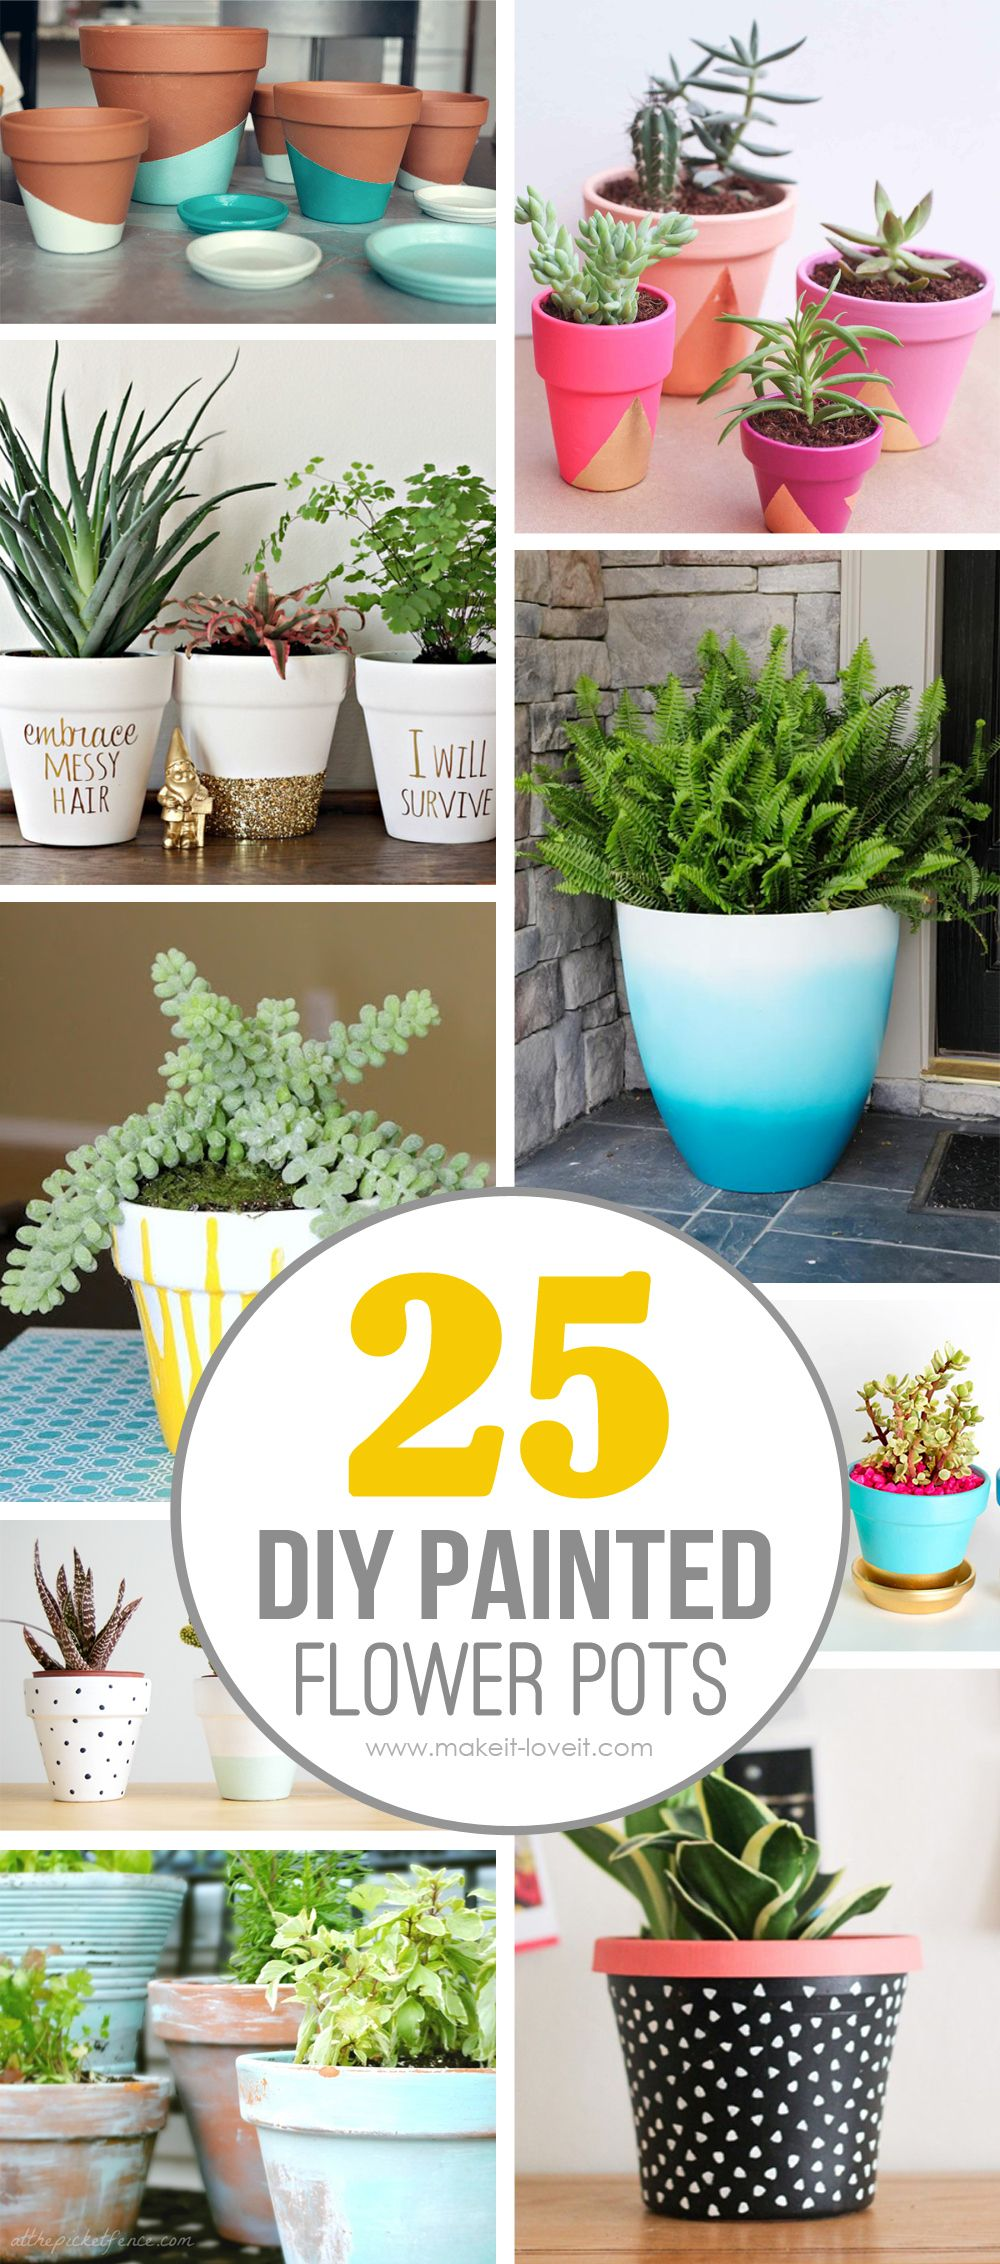 25 Design Ideas to Paint Terracotta Flower Pots | DIY